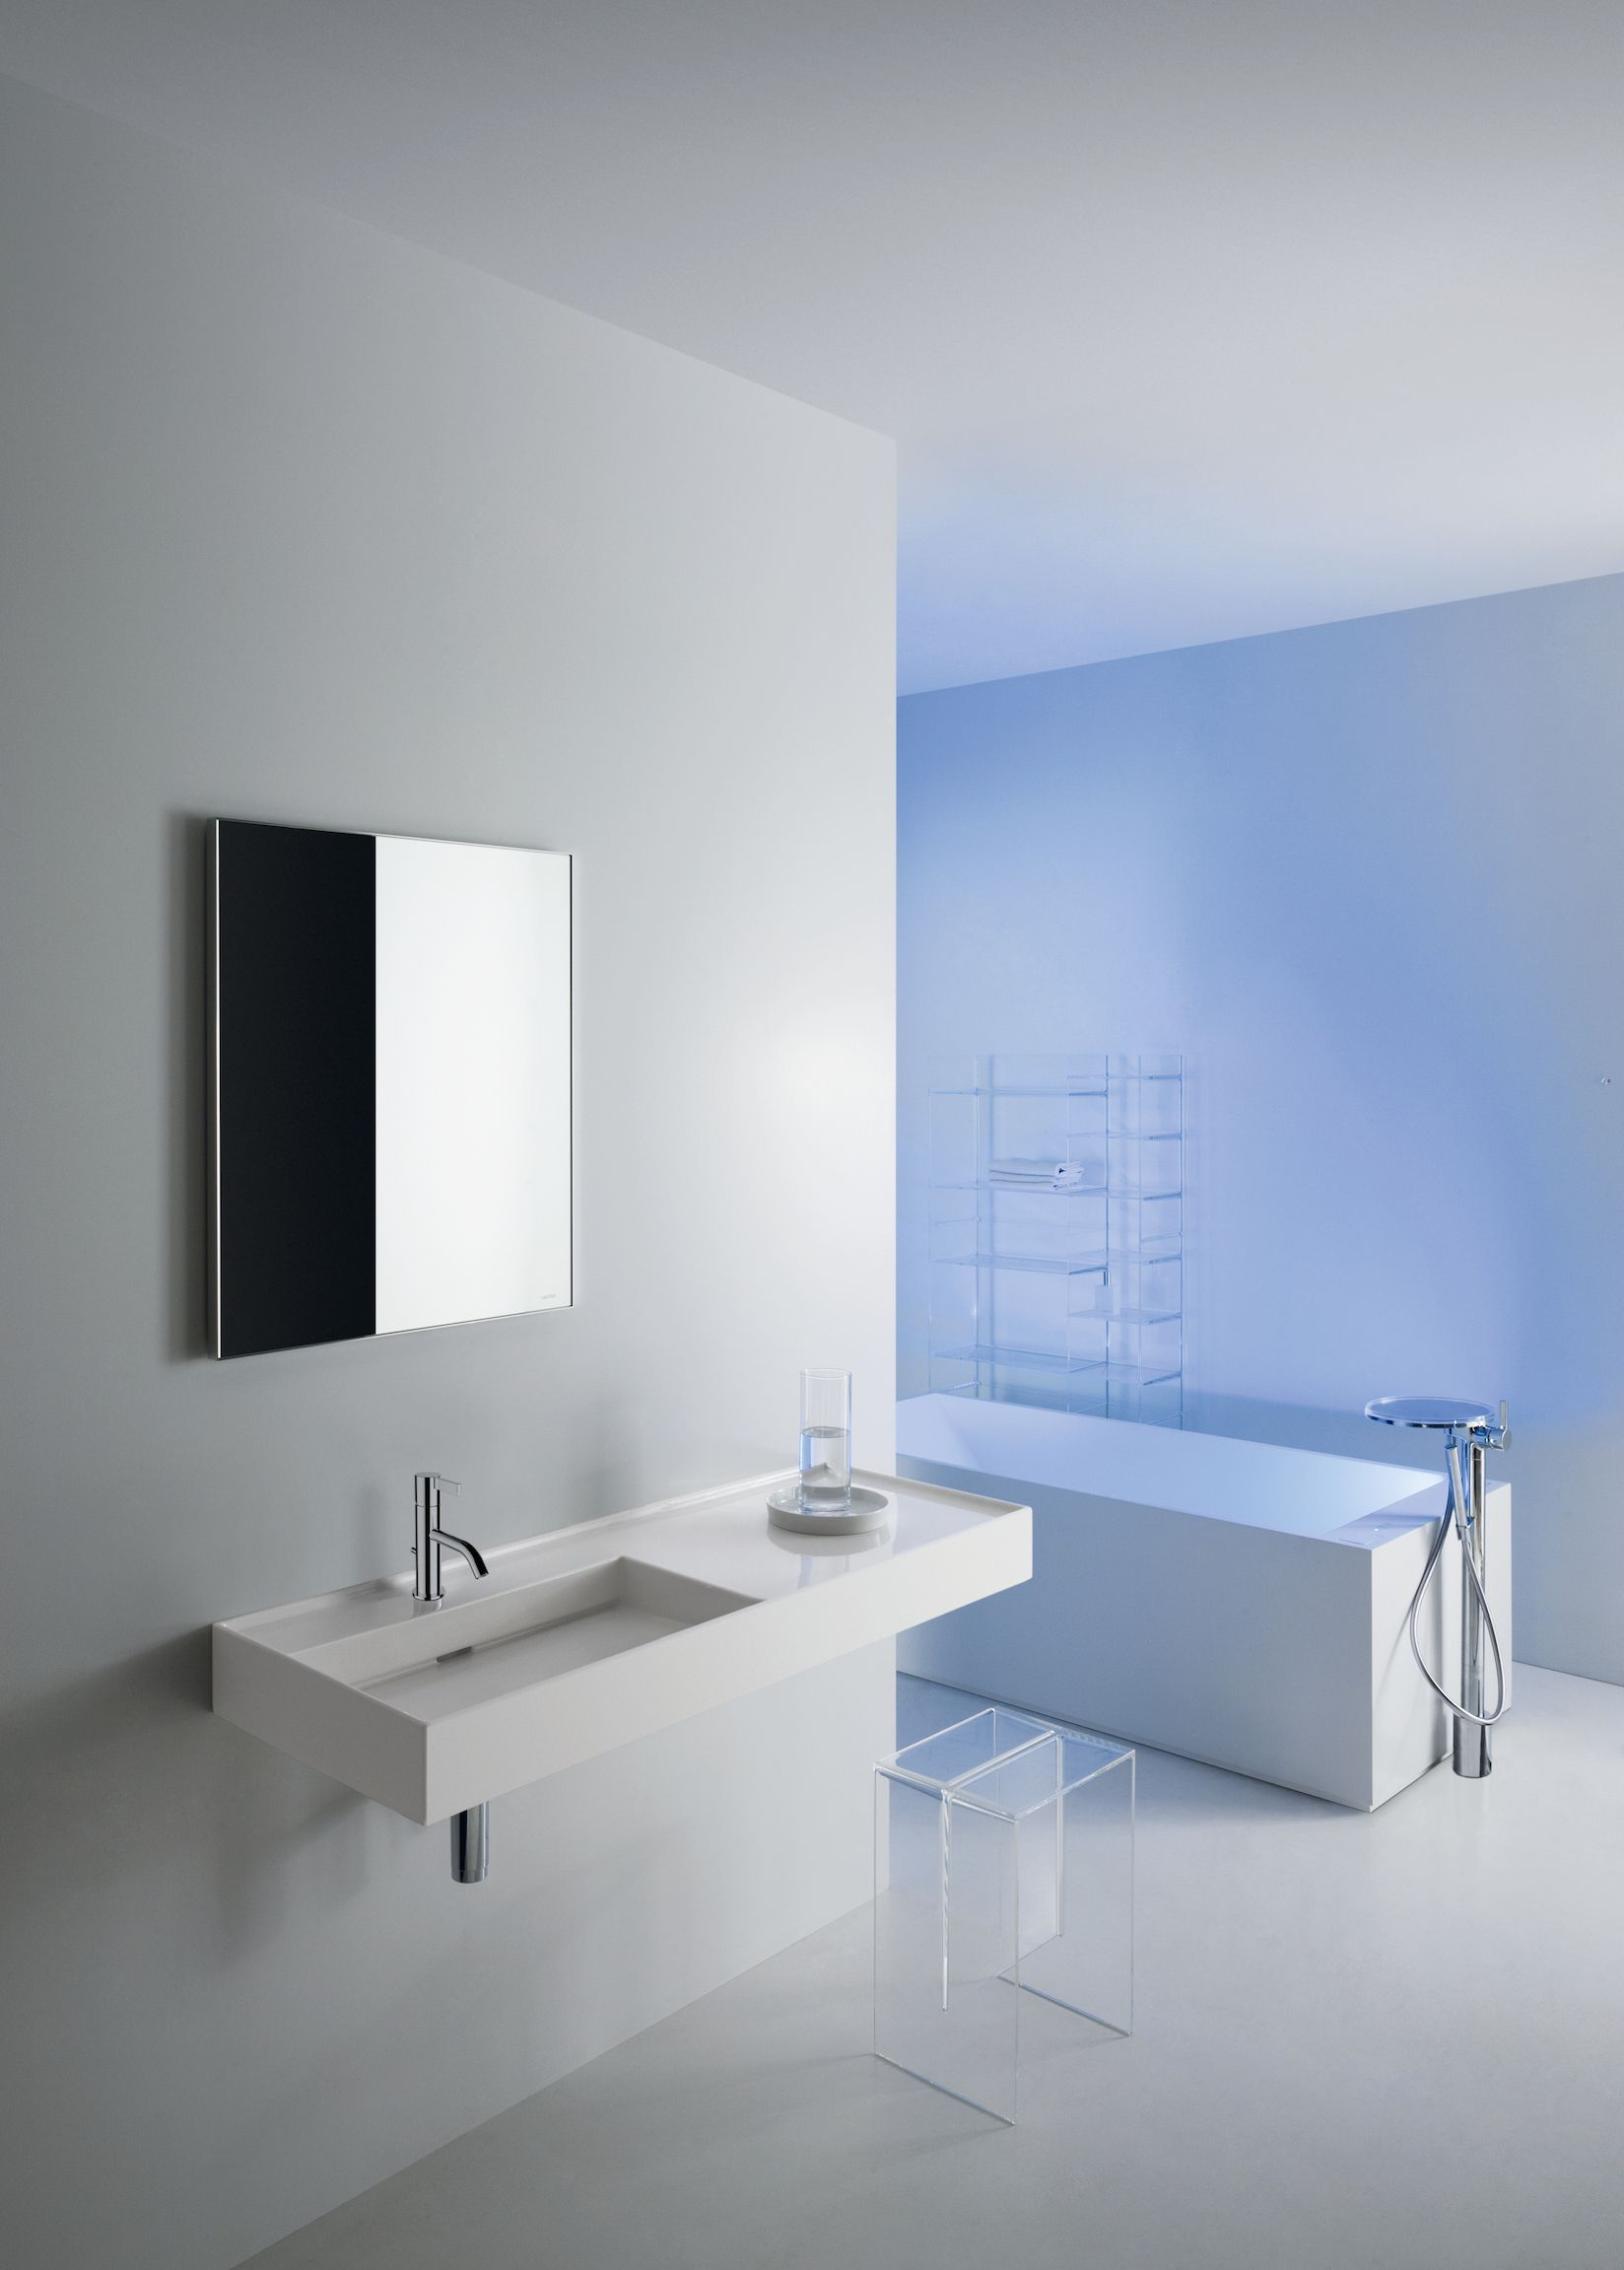 Kartell By Laufen Laufen Bathrooms Silence Is Luxurious 3 View Our Range At Www Thebathroomboutique Ie L Badewanne Badezimmer Inspiration Badezimmer Trends